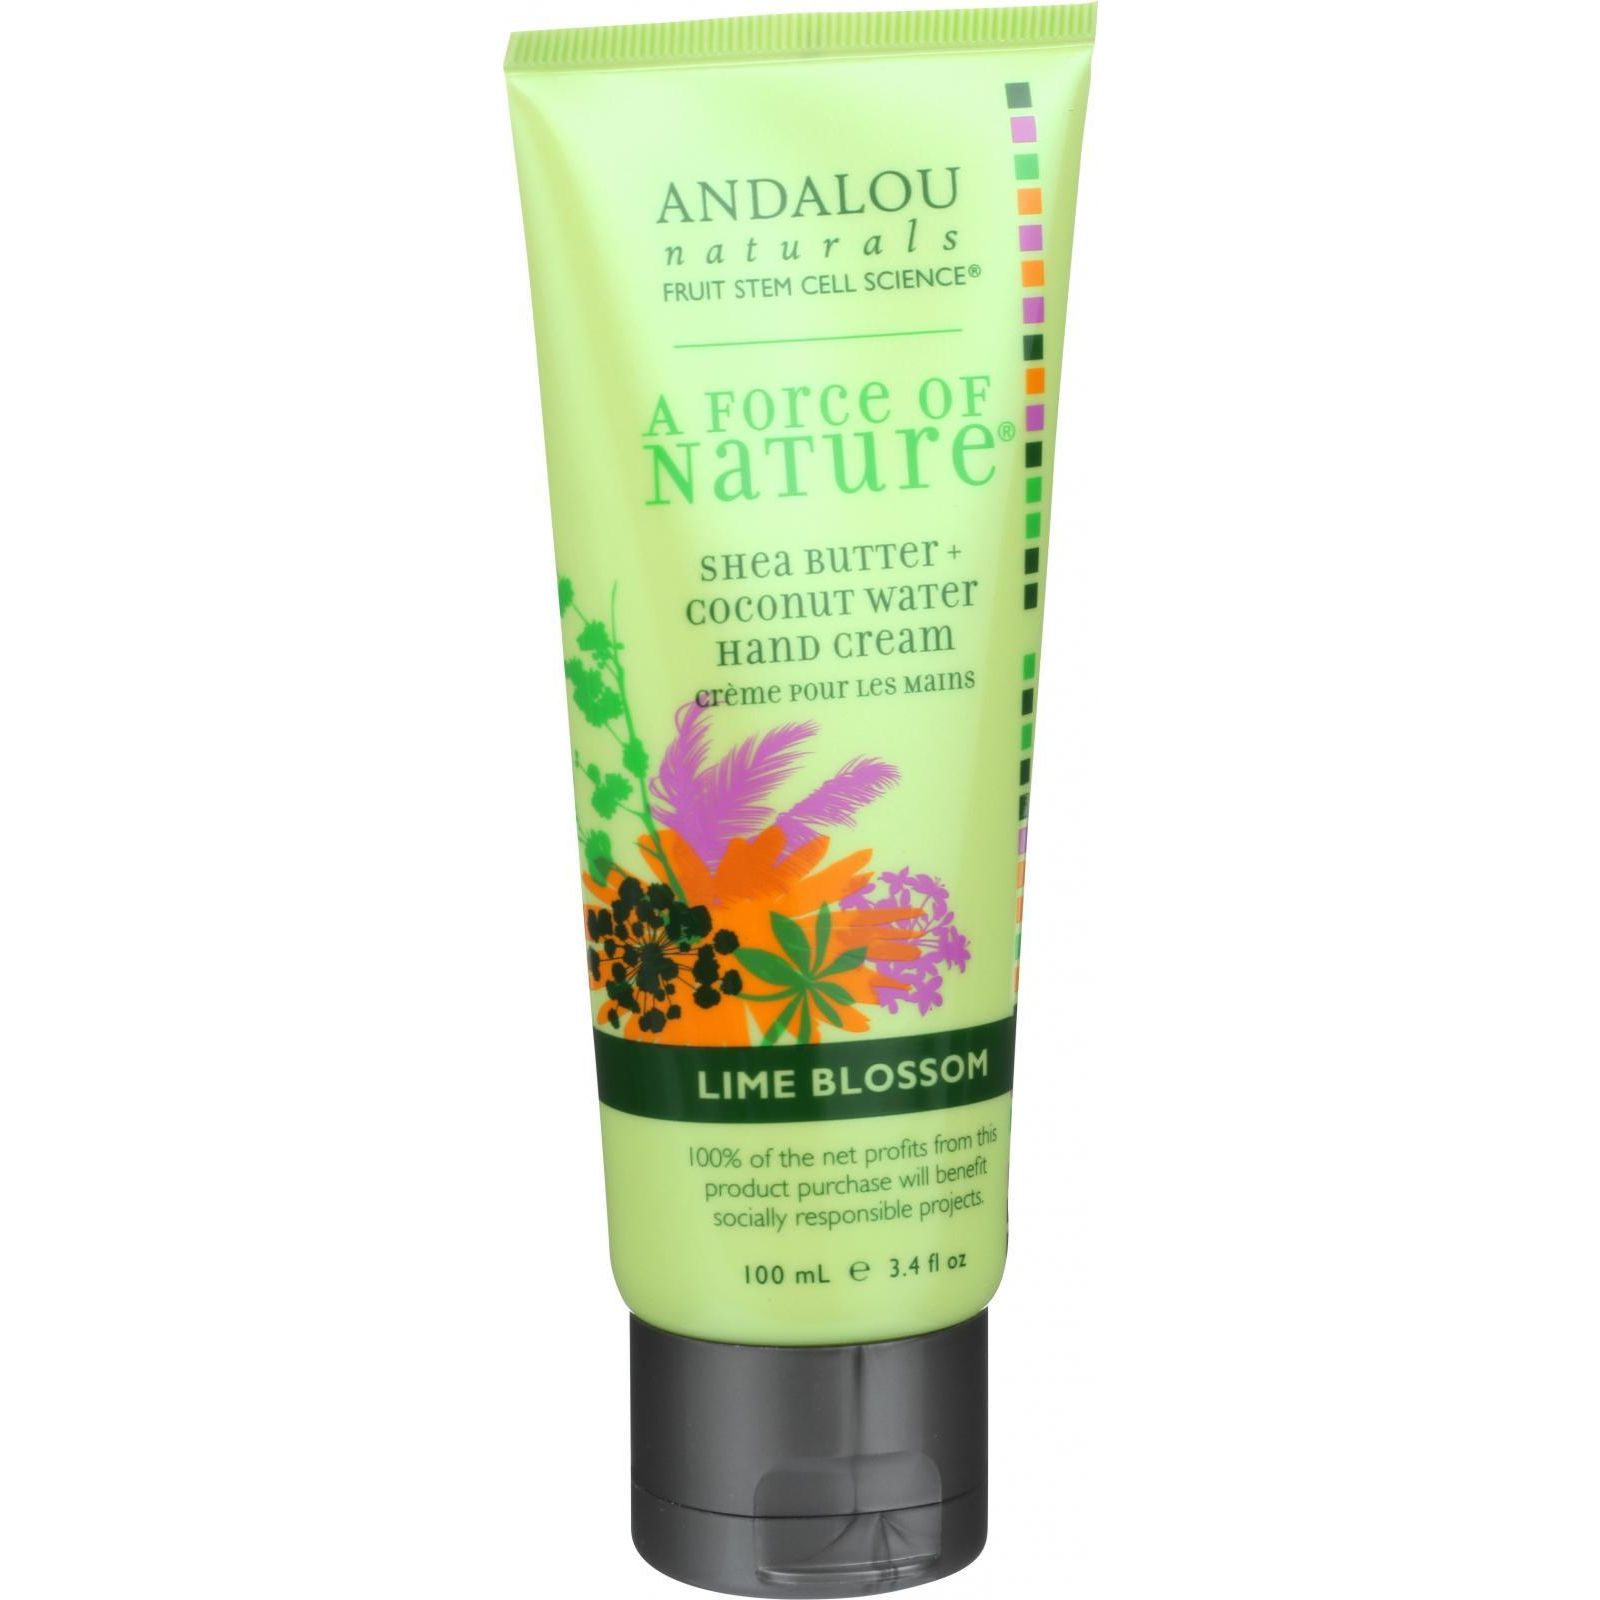 Andalou Naturals Hand Cream  A Force of Nature Shea Butter plus Coconut Water  Lime Blossom  3.4 oz